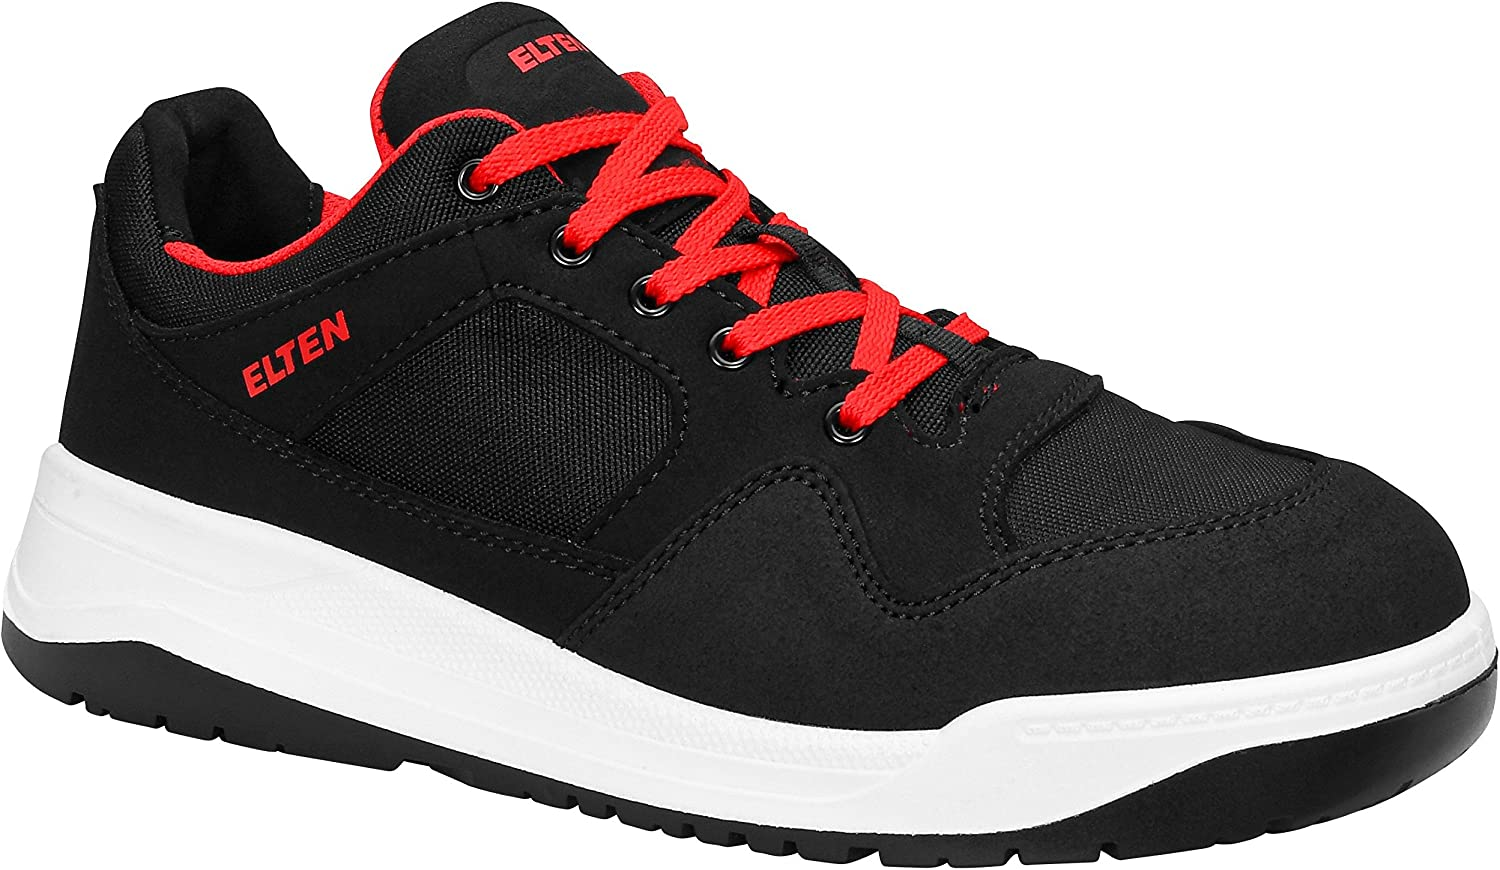 ELTEN Unisex Adults' Maverick Black Low ESD S3 Safety Trainers